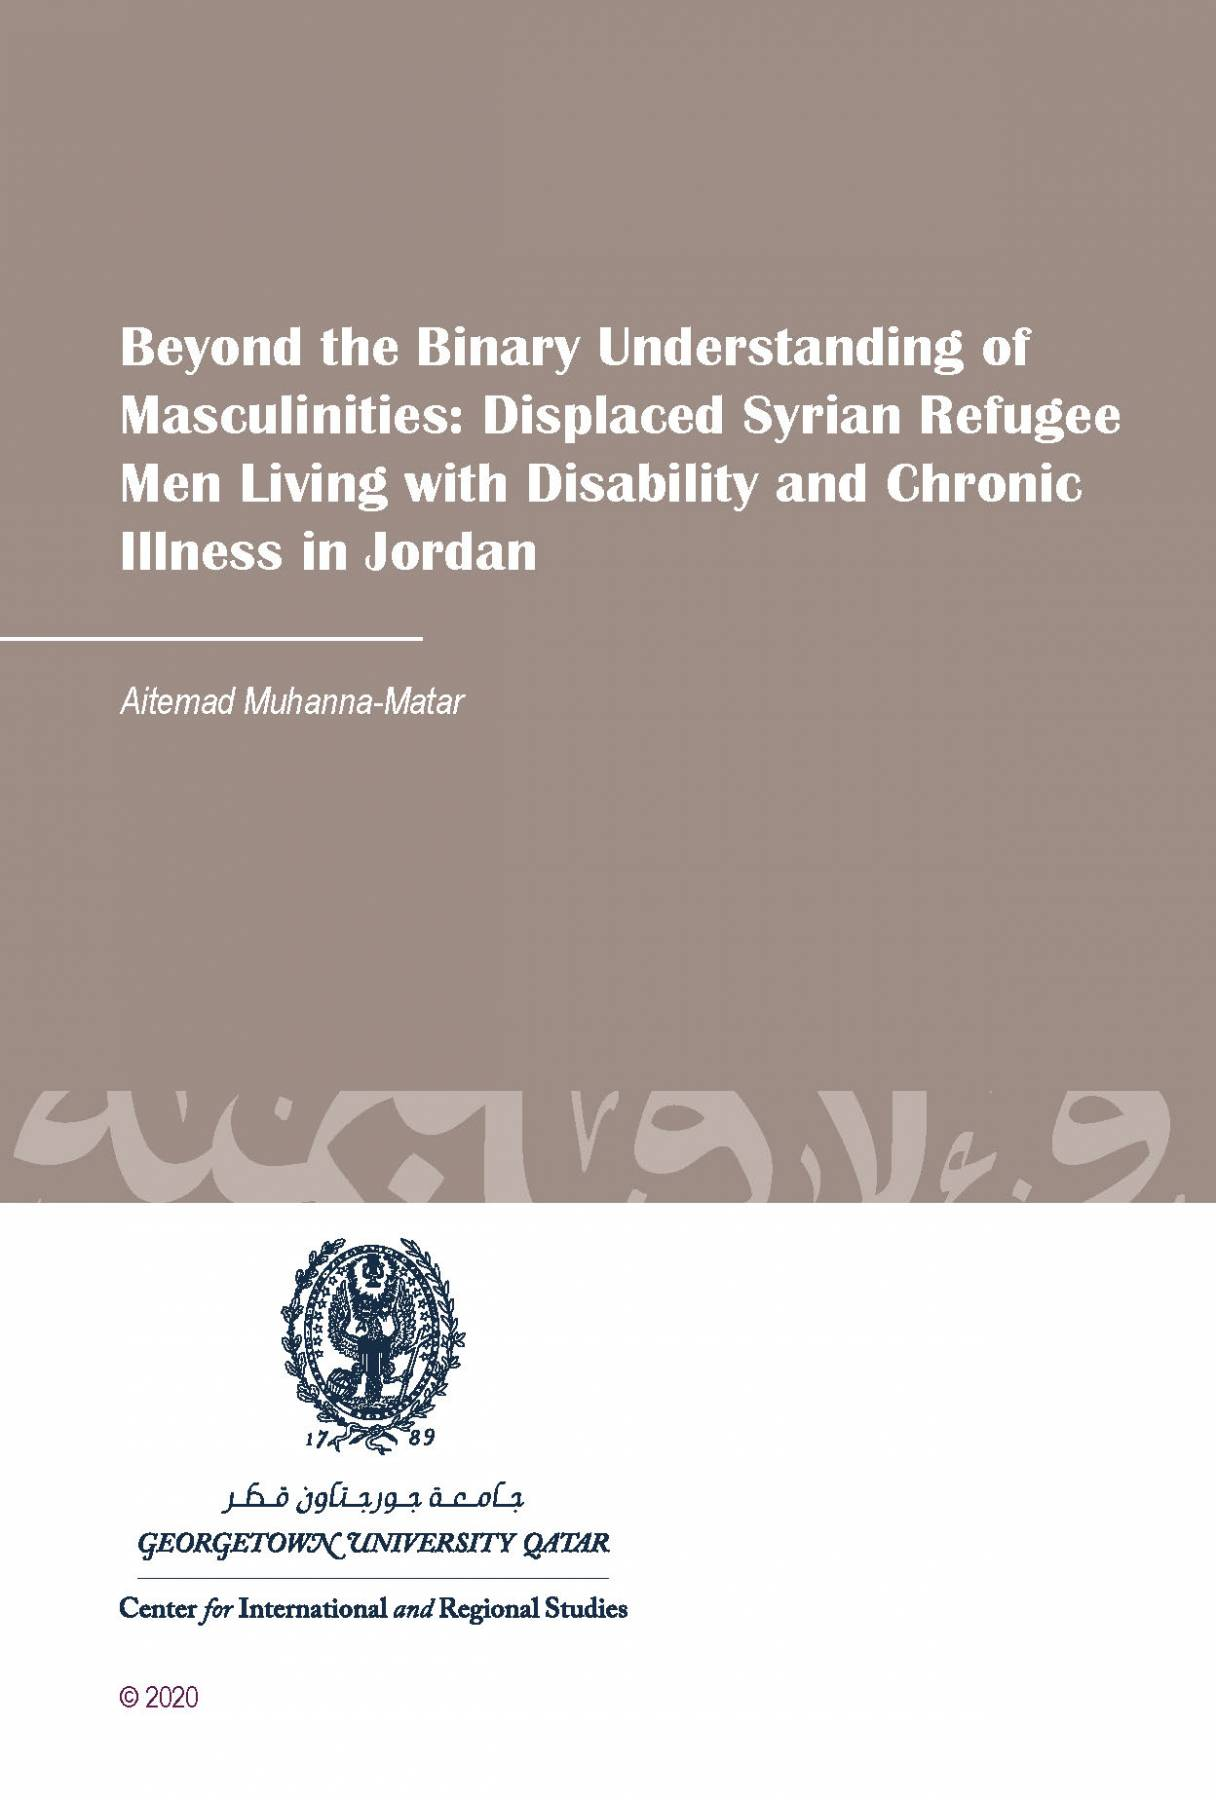 Beyond the Binary Understanding of Masculinities: Displaced Syrian Refugee Men Living with Disability and Chronic Illness in Jordan